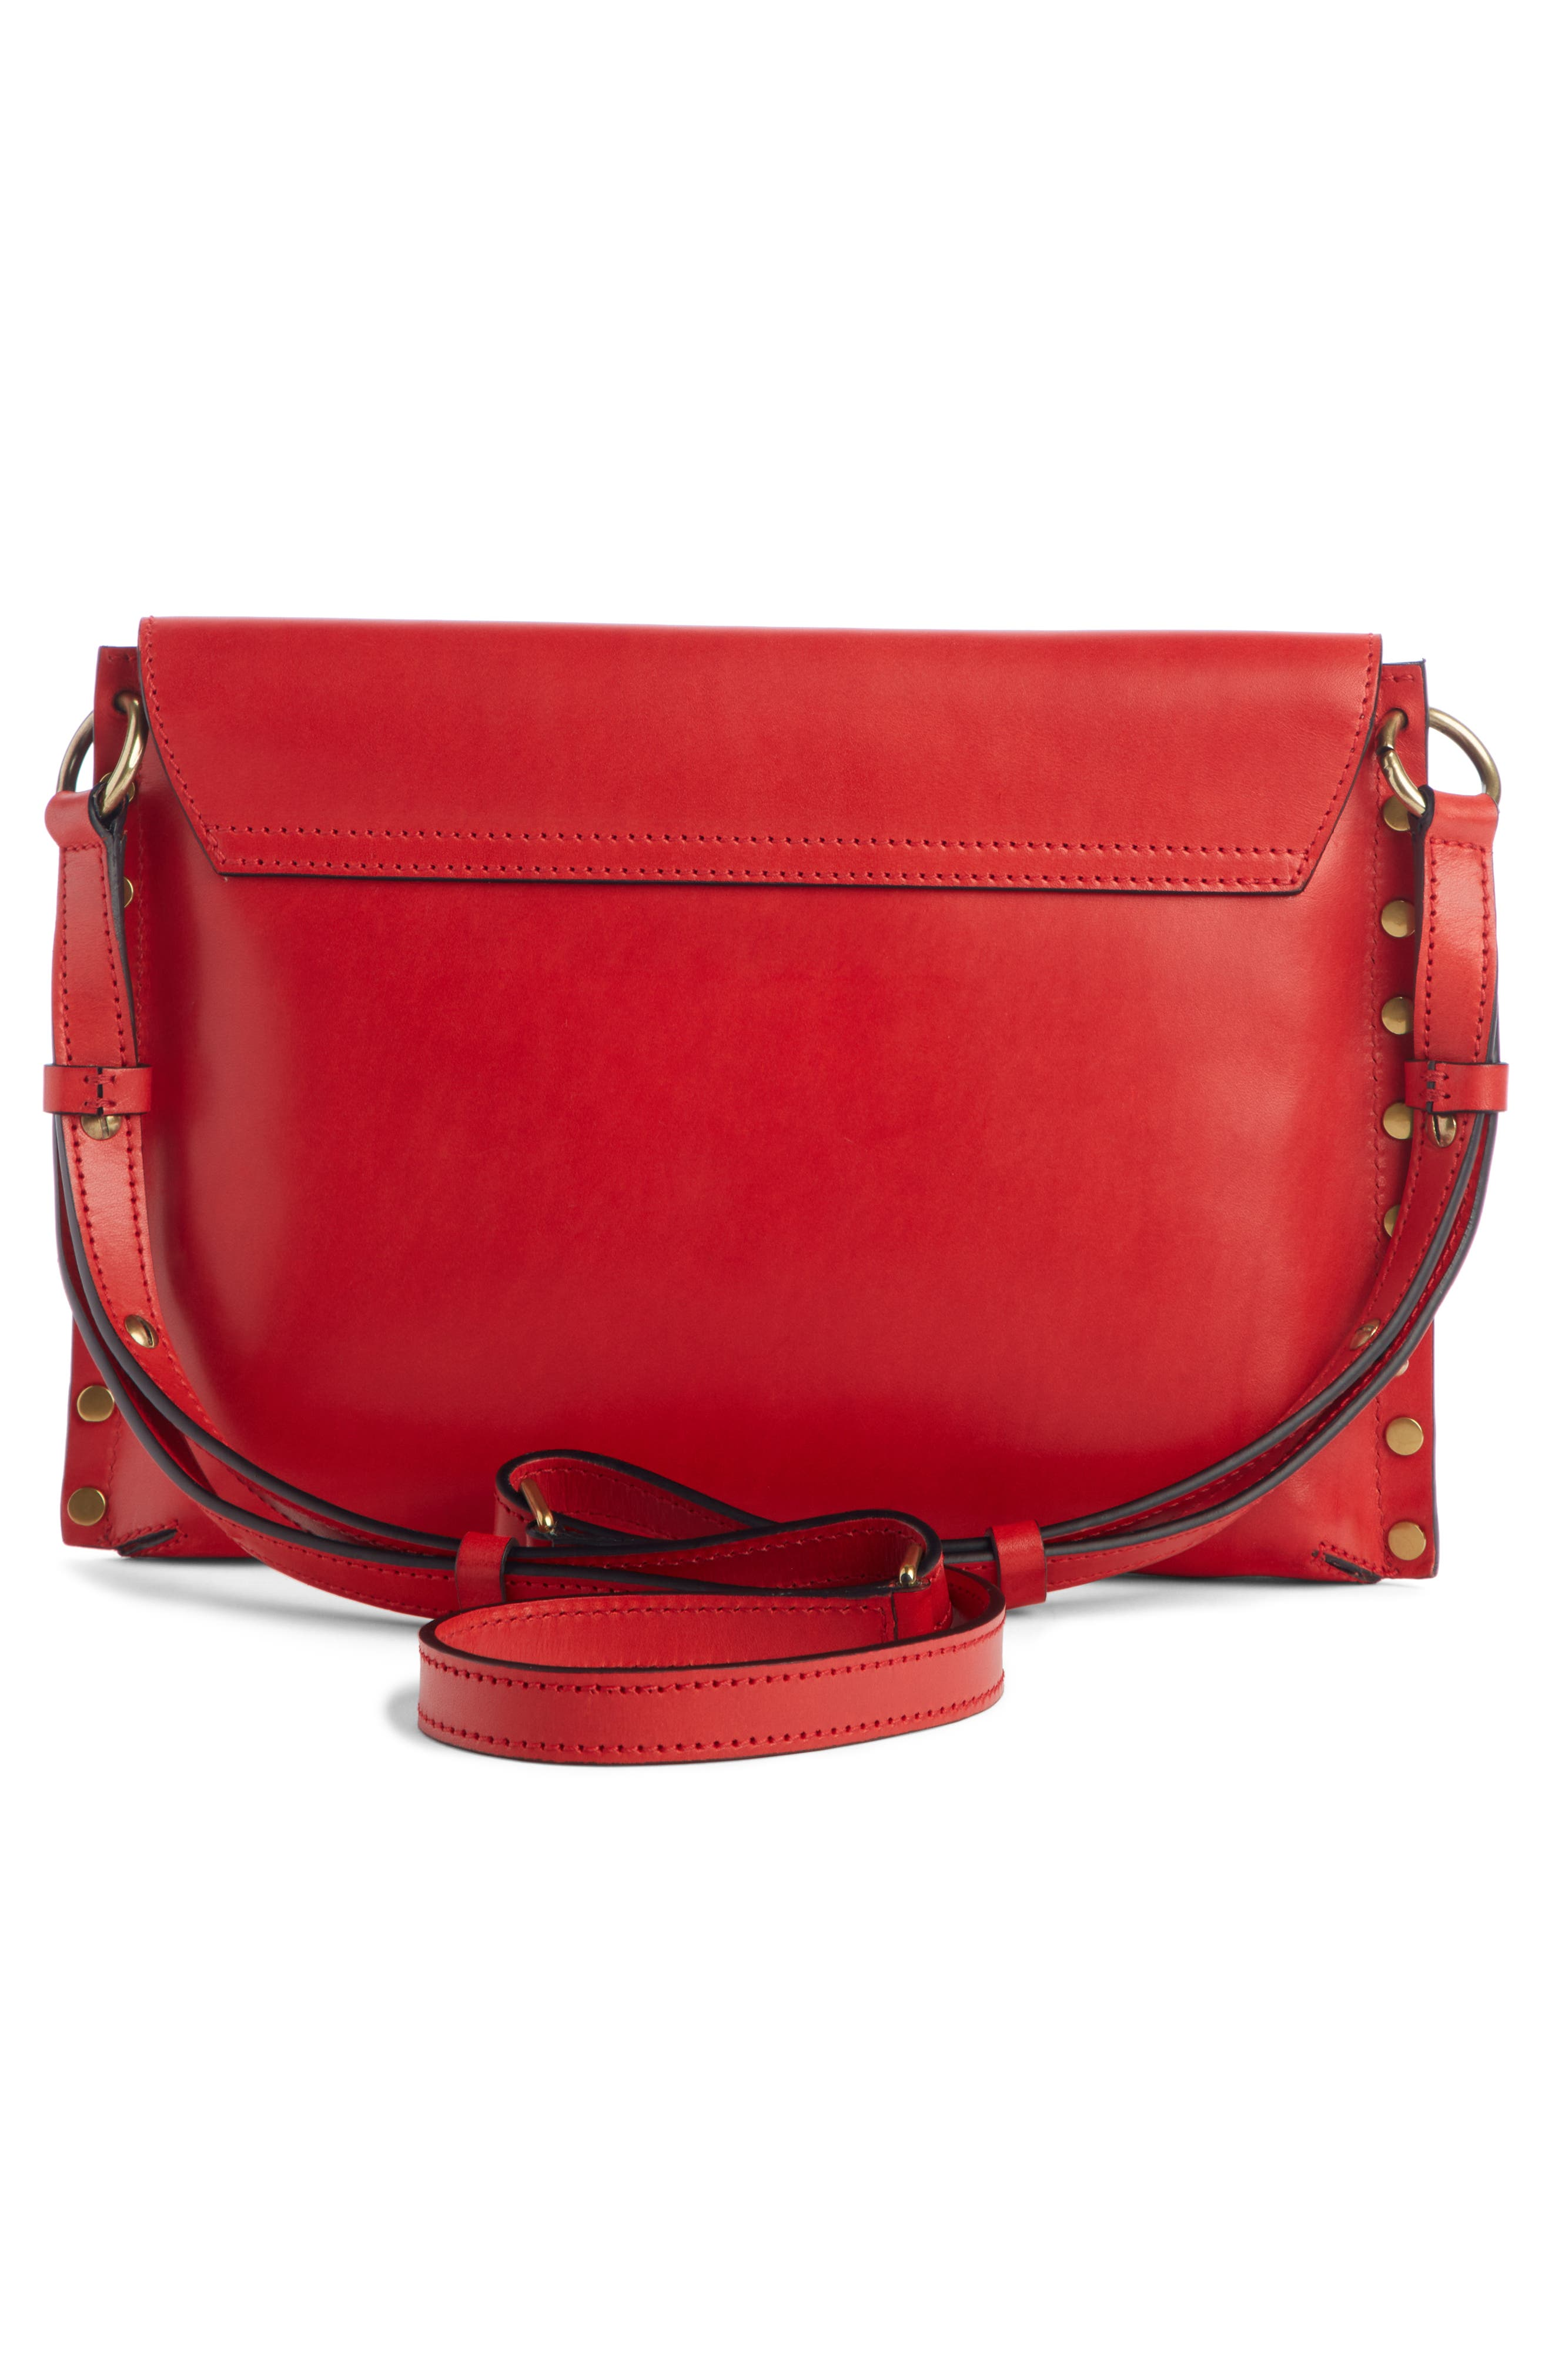 ISABEL MARANT,                             Sinky Leather Crossbody Bag,                             Alternate thumbnail 2, color,                             RED